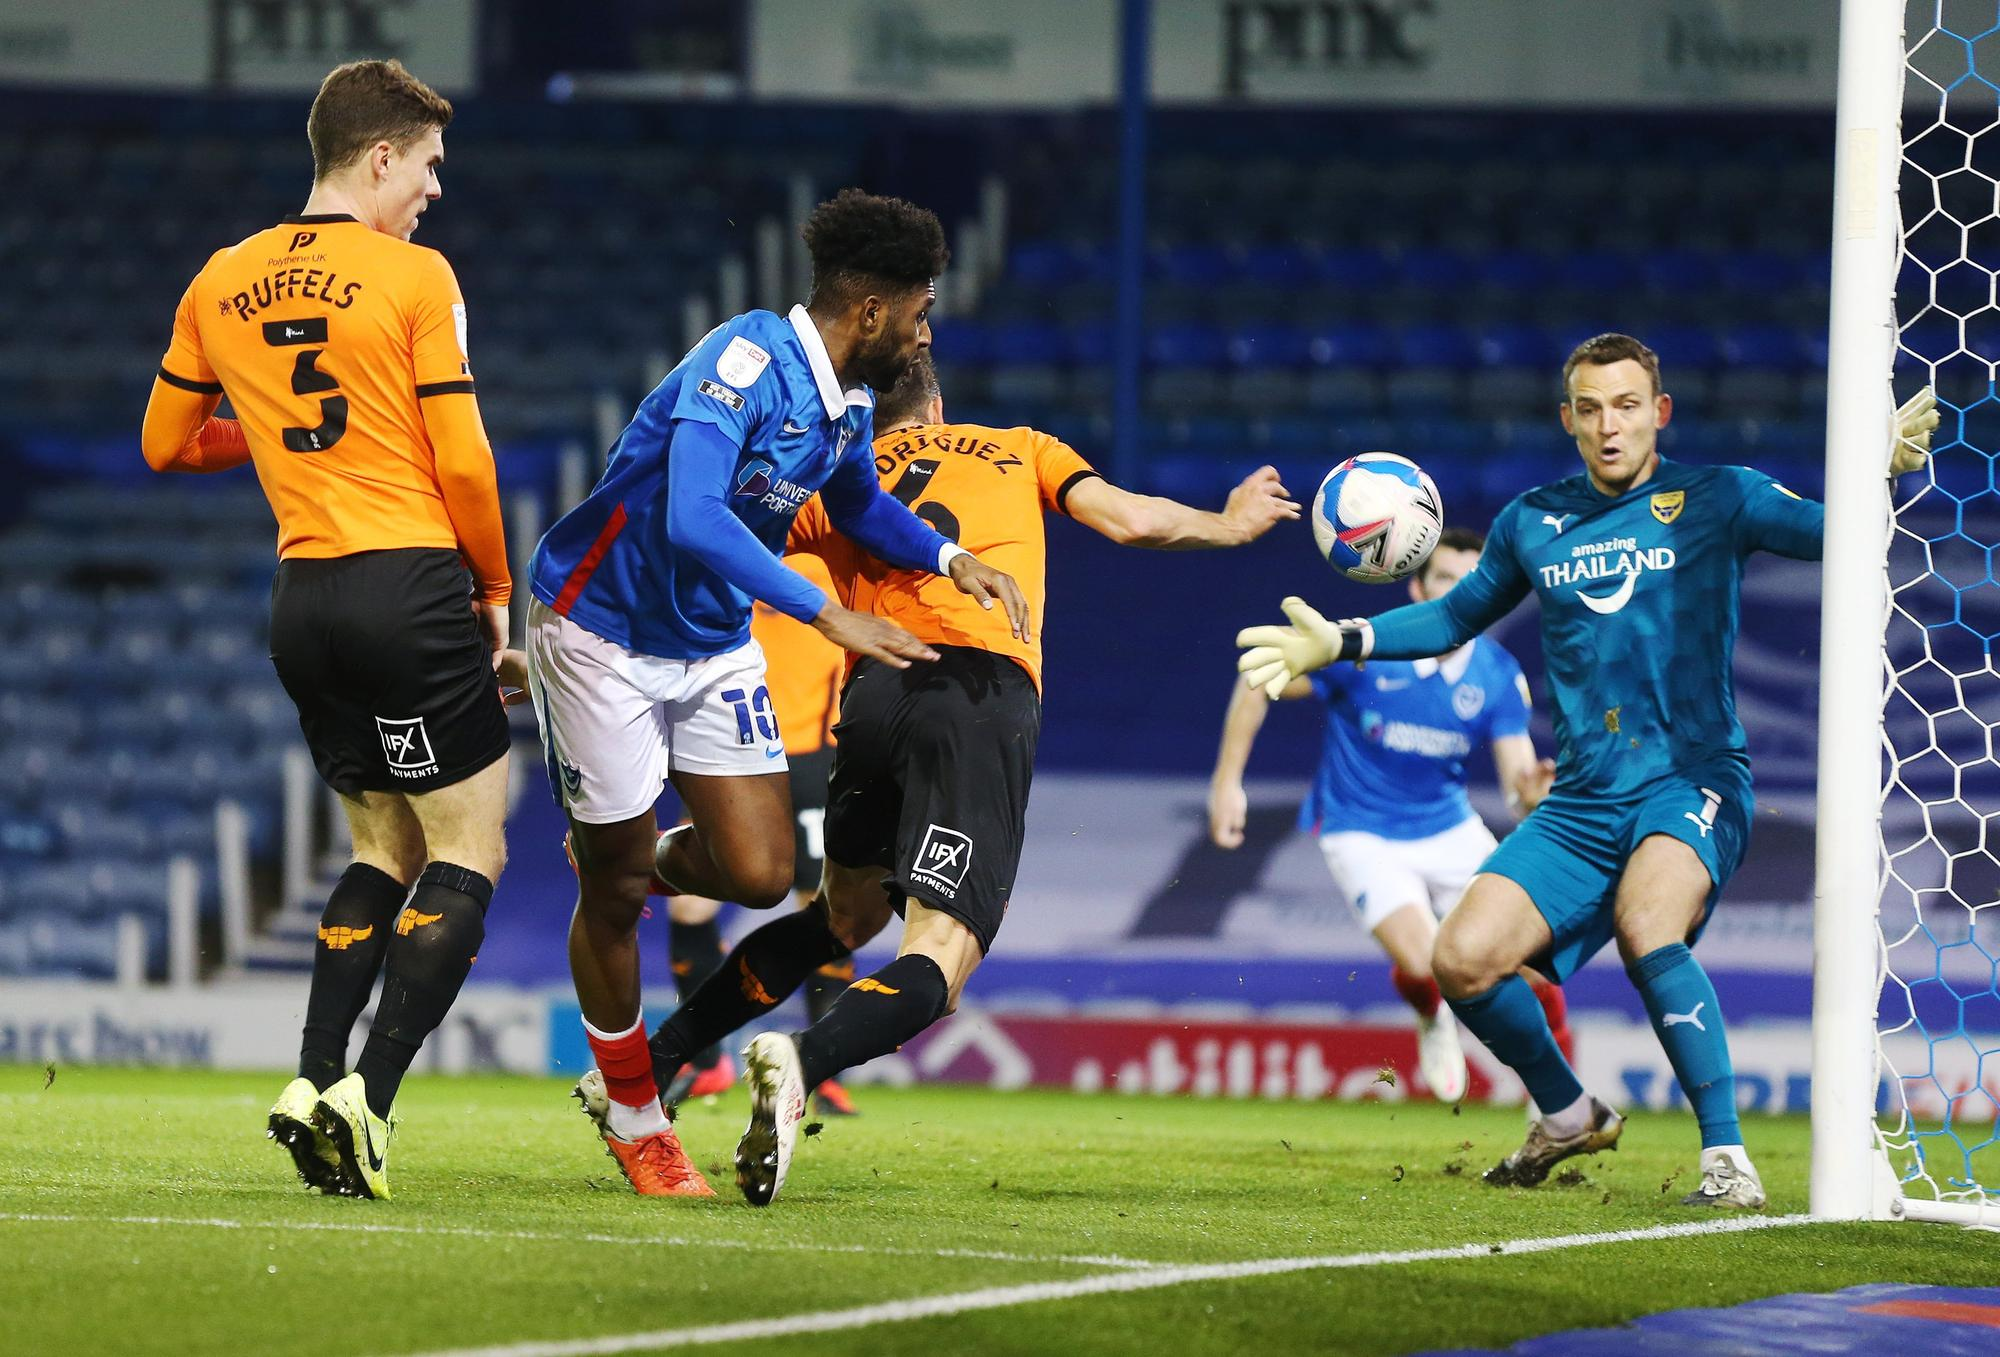 'Strong and assured... developing into key player... not involved enough' - Neil Allen's Pompey match ratings